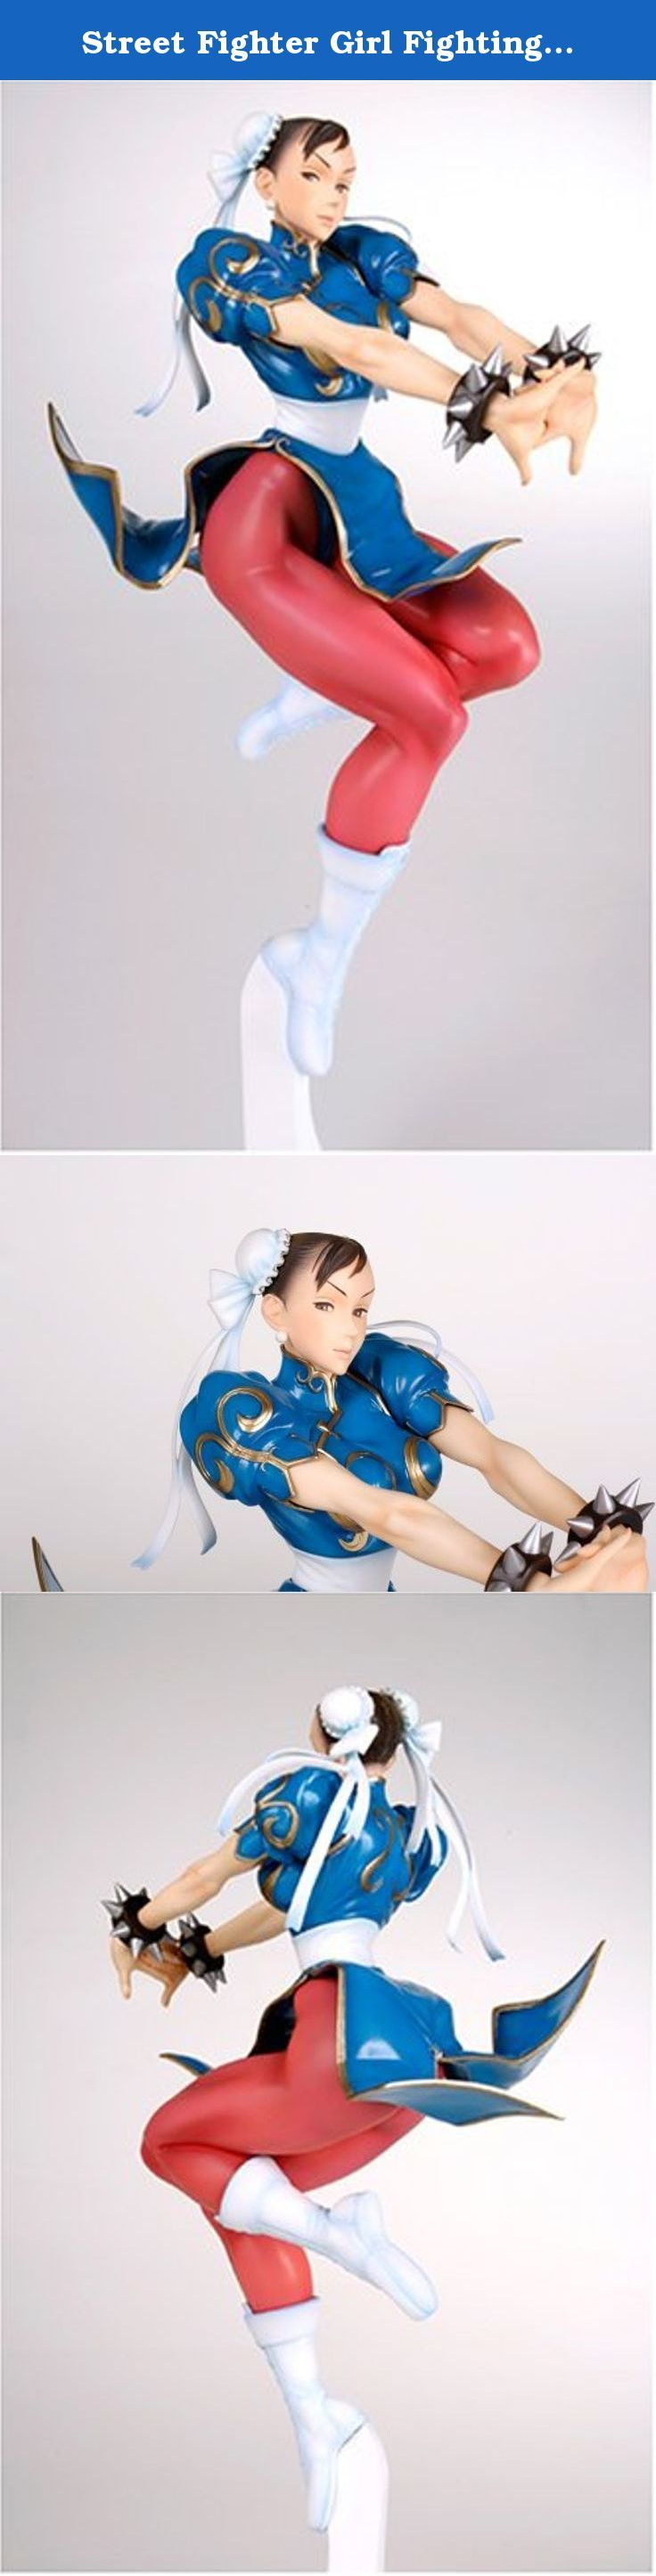 "Street Fighter Girl Fighting - Chun-Li 1/6 Scale PVC Figure (Max Factory). A character of Nishimura's representative illustration ""GIRL-FIGHTING"", 1/6 scale figure of ""Chunri"". From the powerful body that reproduced a powerful illustration, there is atmosphere that seems to be able to bring forth the killer killer and the Qigong fist. Prototype production is Takeshi Hamasaki. Dedicated pedestal included."